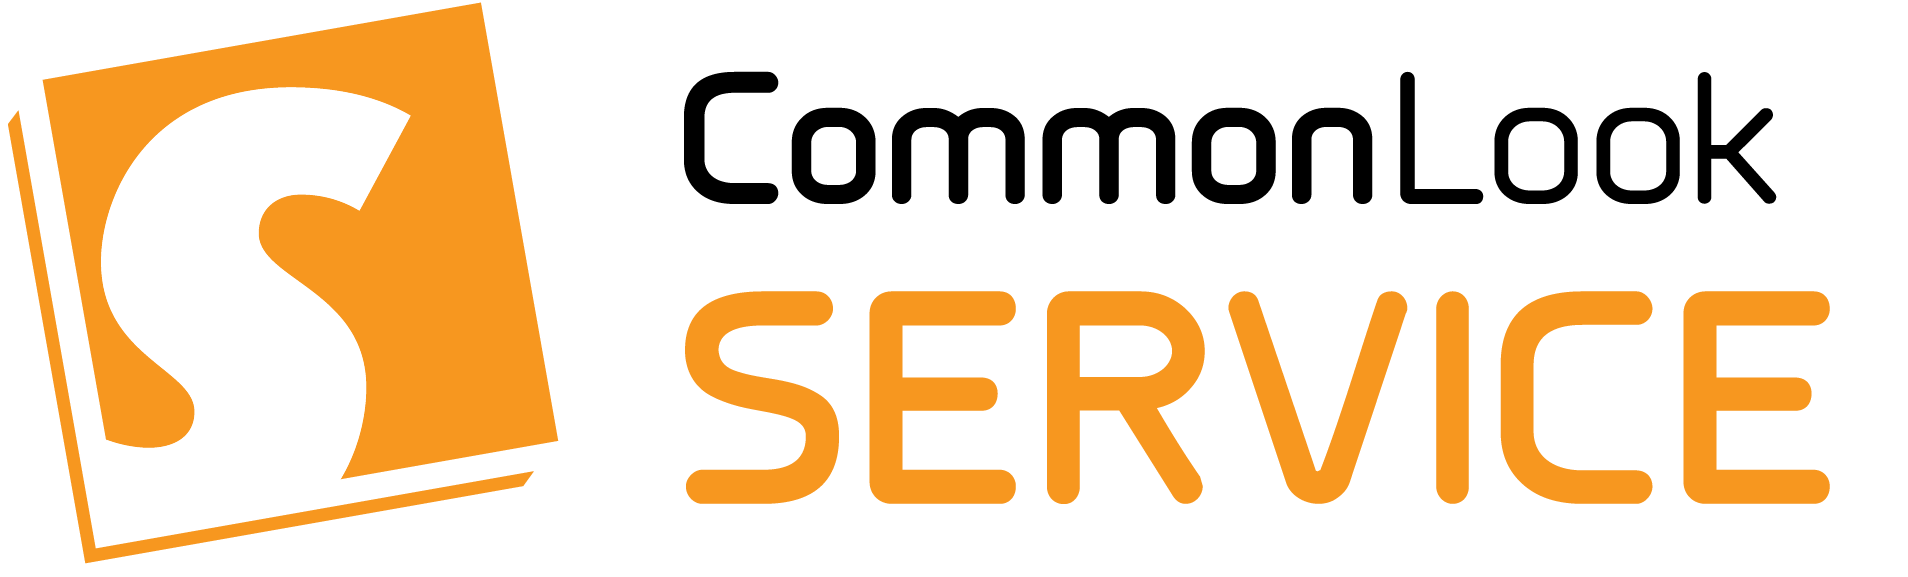 commonlook-service-logo